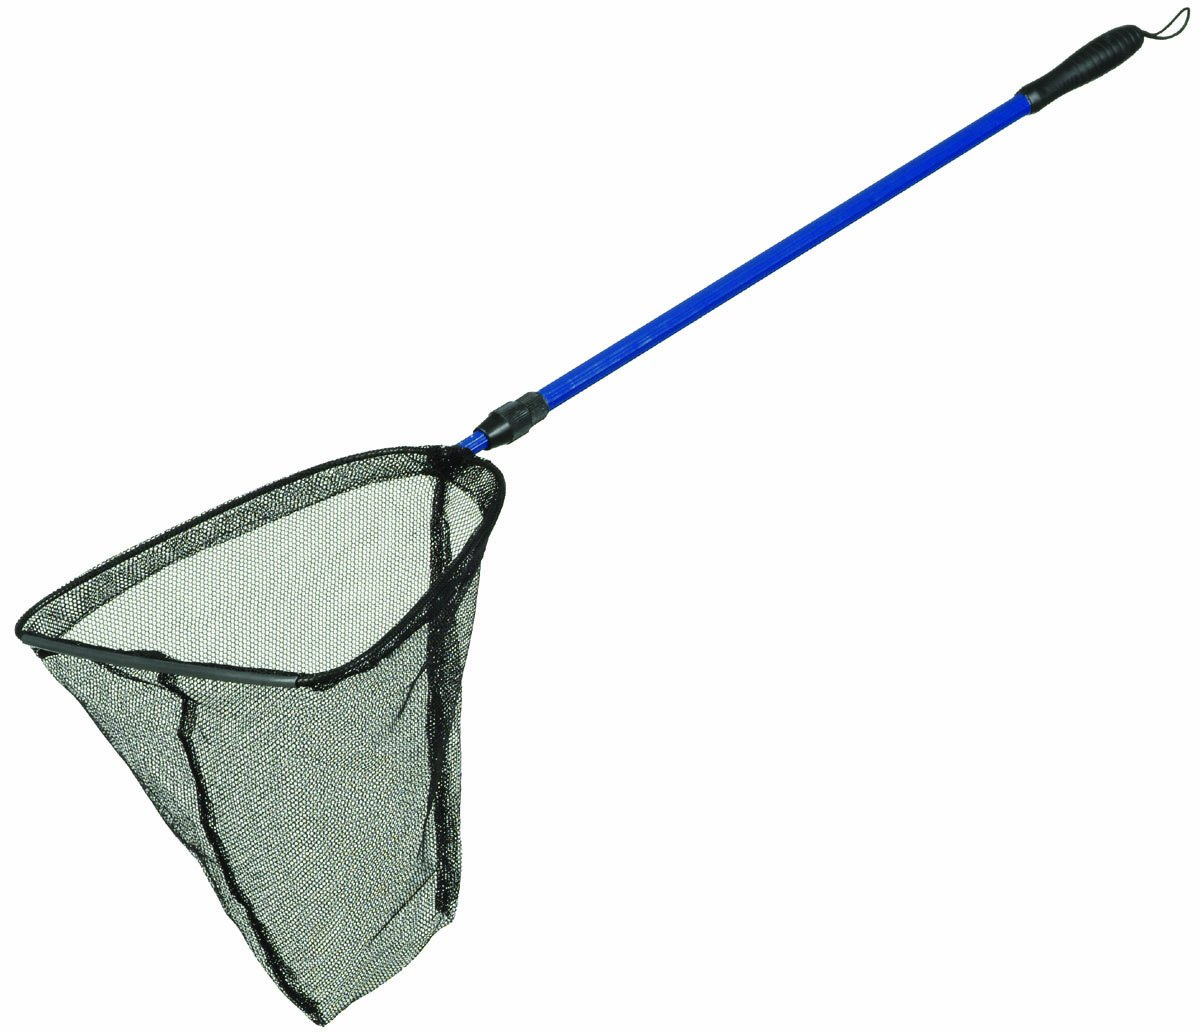 Pond fish net 14 diameter 33 60 telescopic handle for Telescoping fishing net